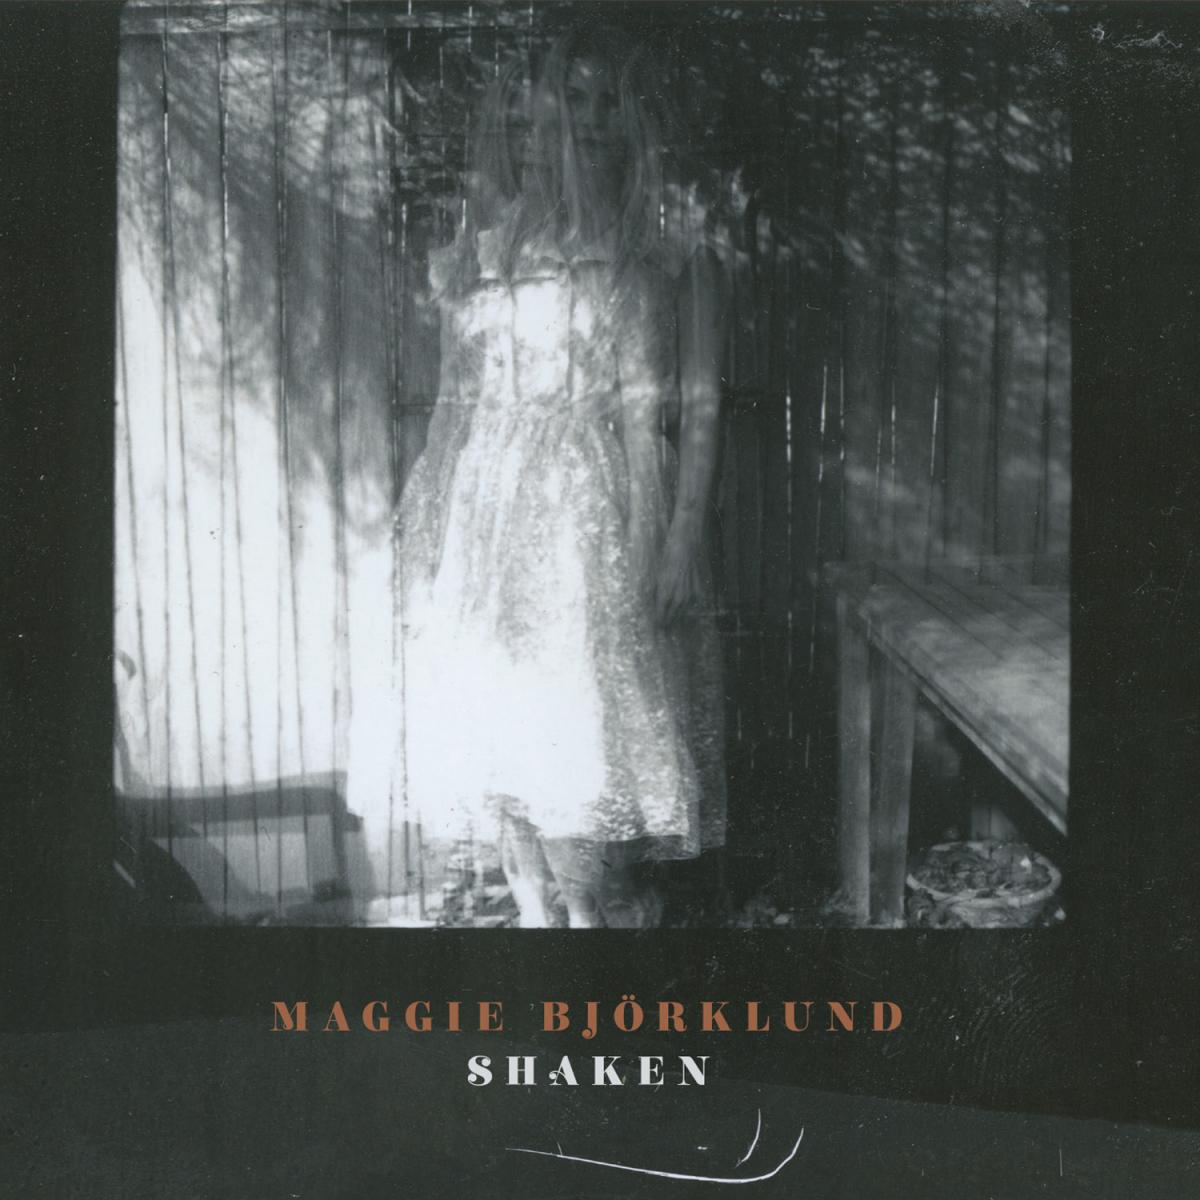 BS221 Maggie Bjorklund Shaken Album Cover Art